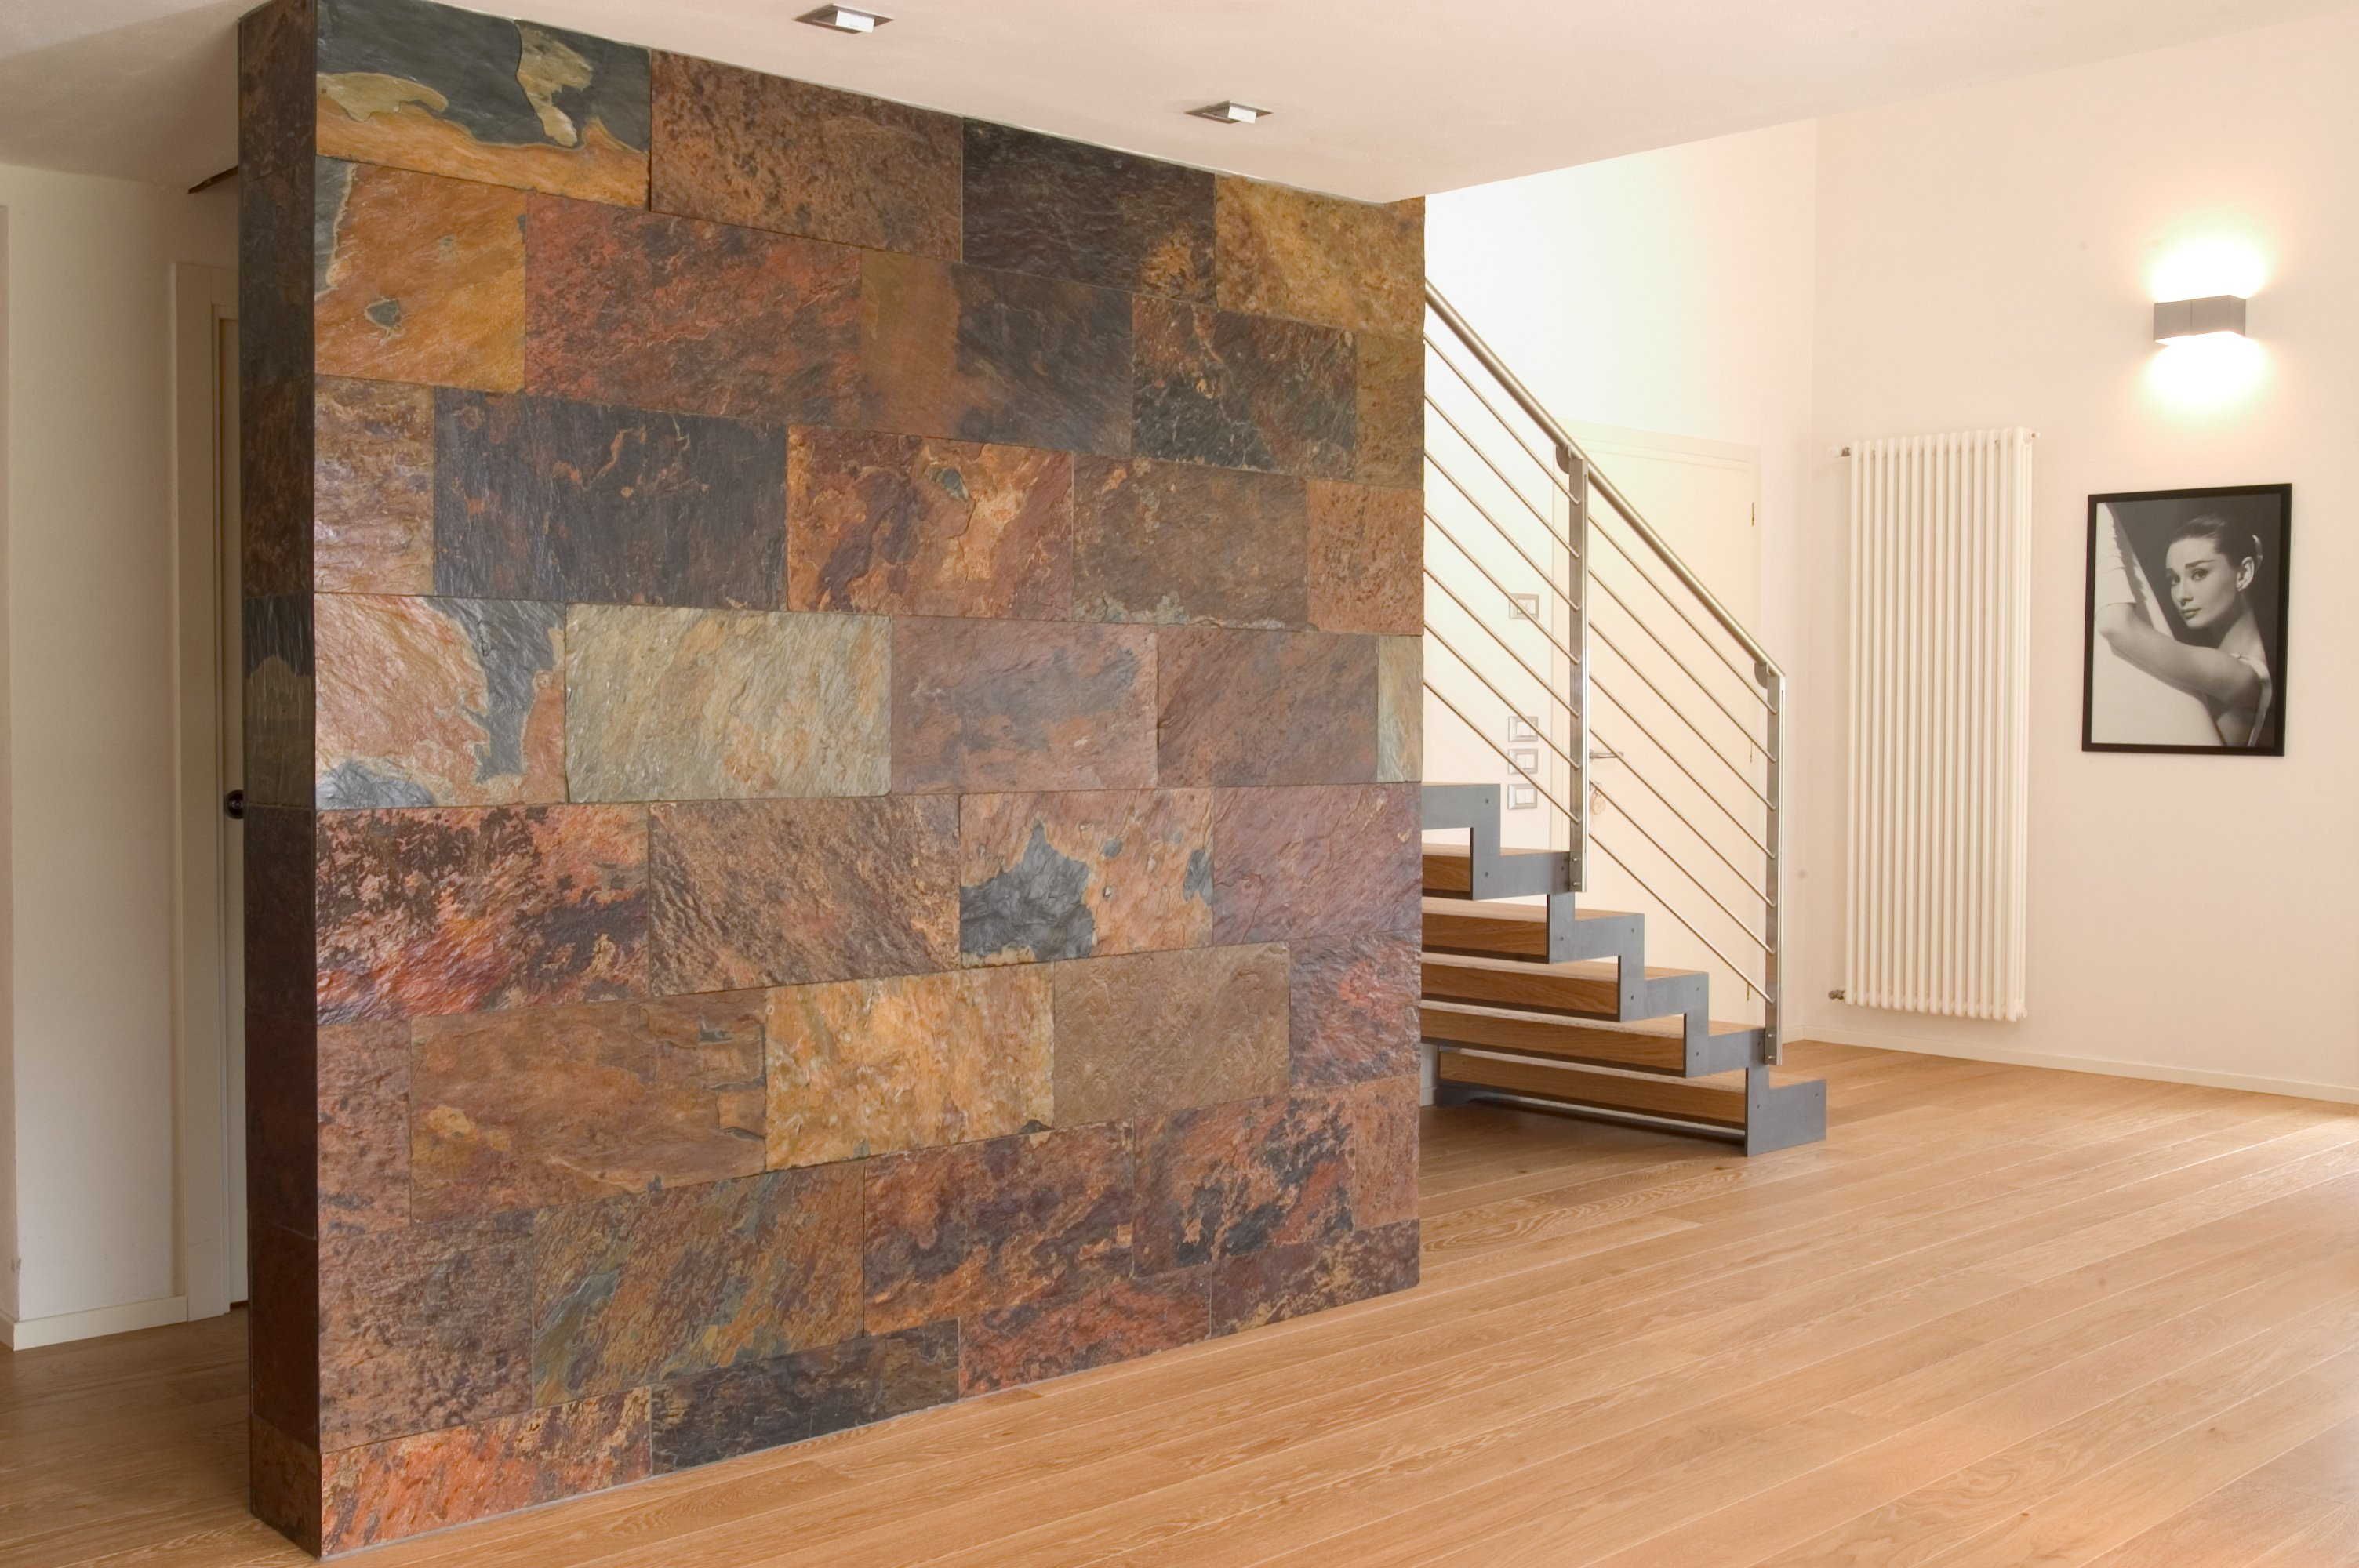 Revestimiento de pared suelo de piedra african sunset by for Diseno para paredes interiores